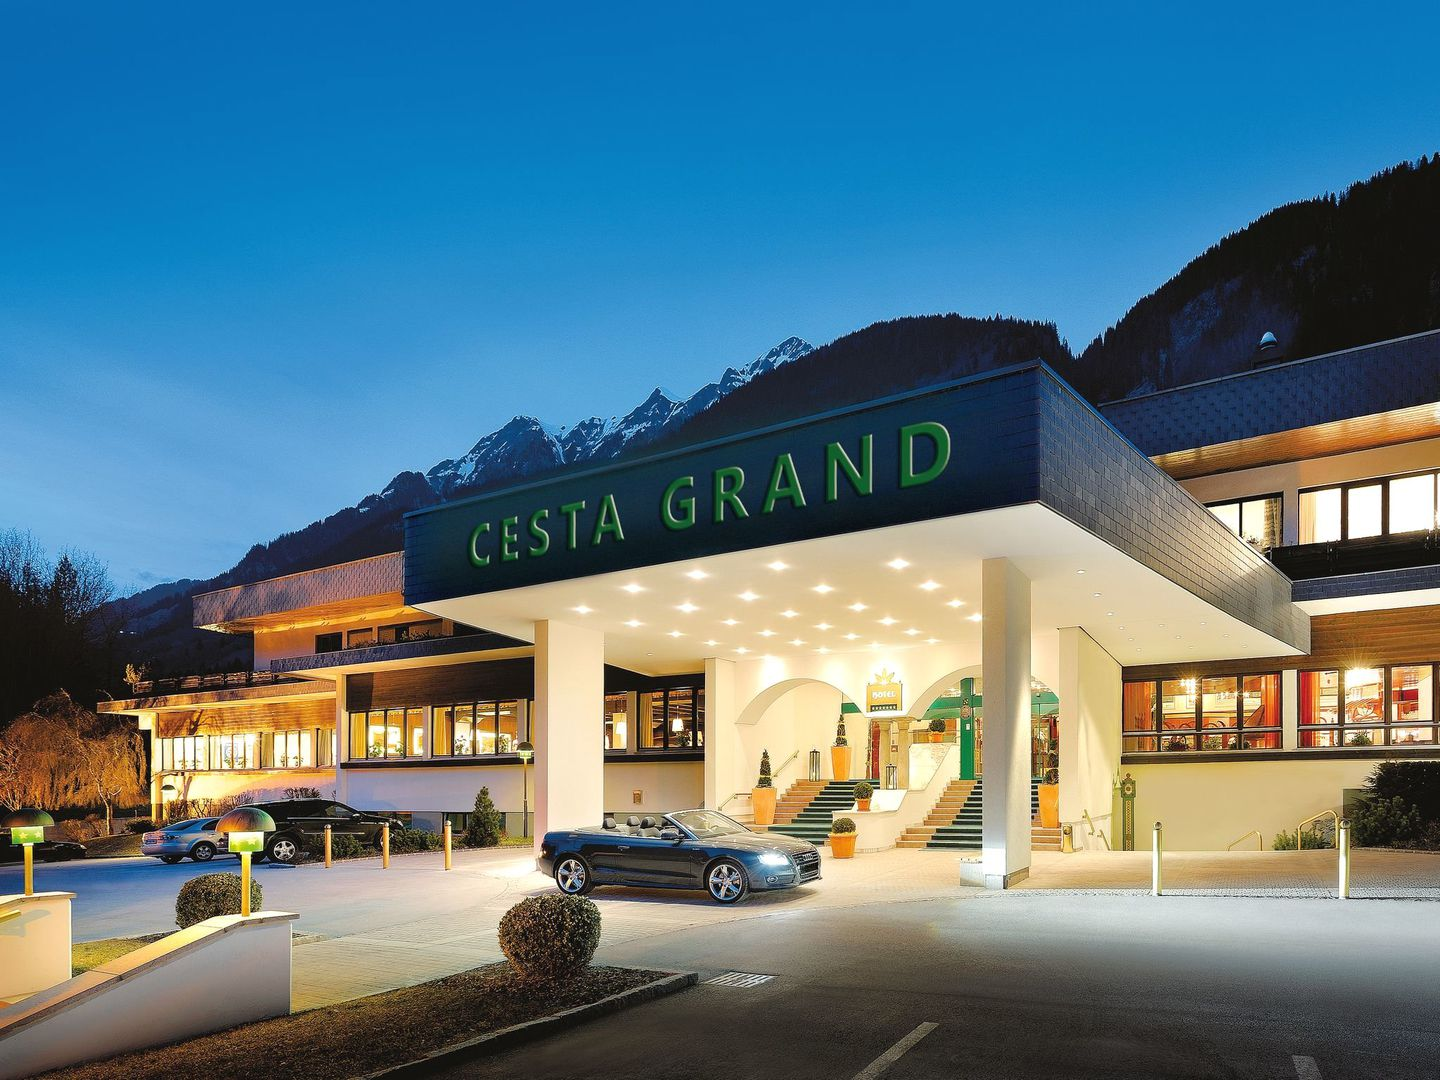 CESTA GRAND Aktivhotel & Spa - Slide 1